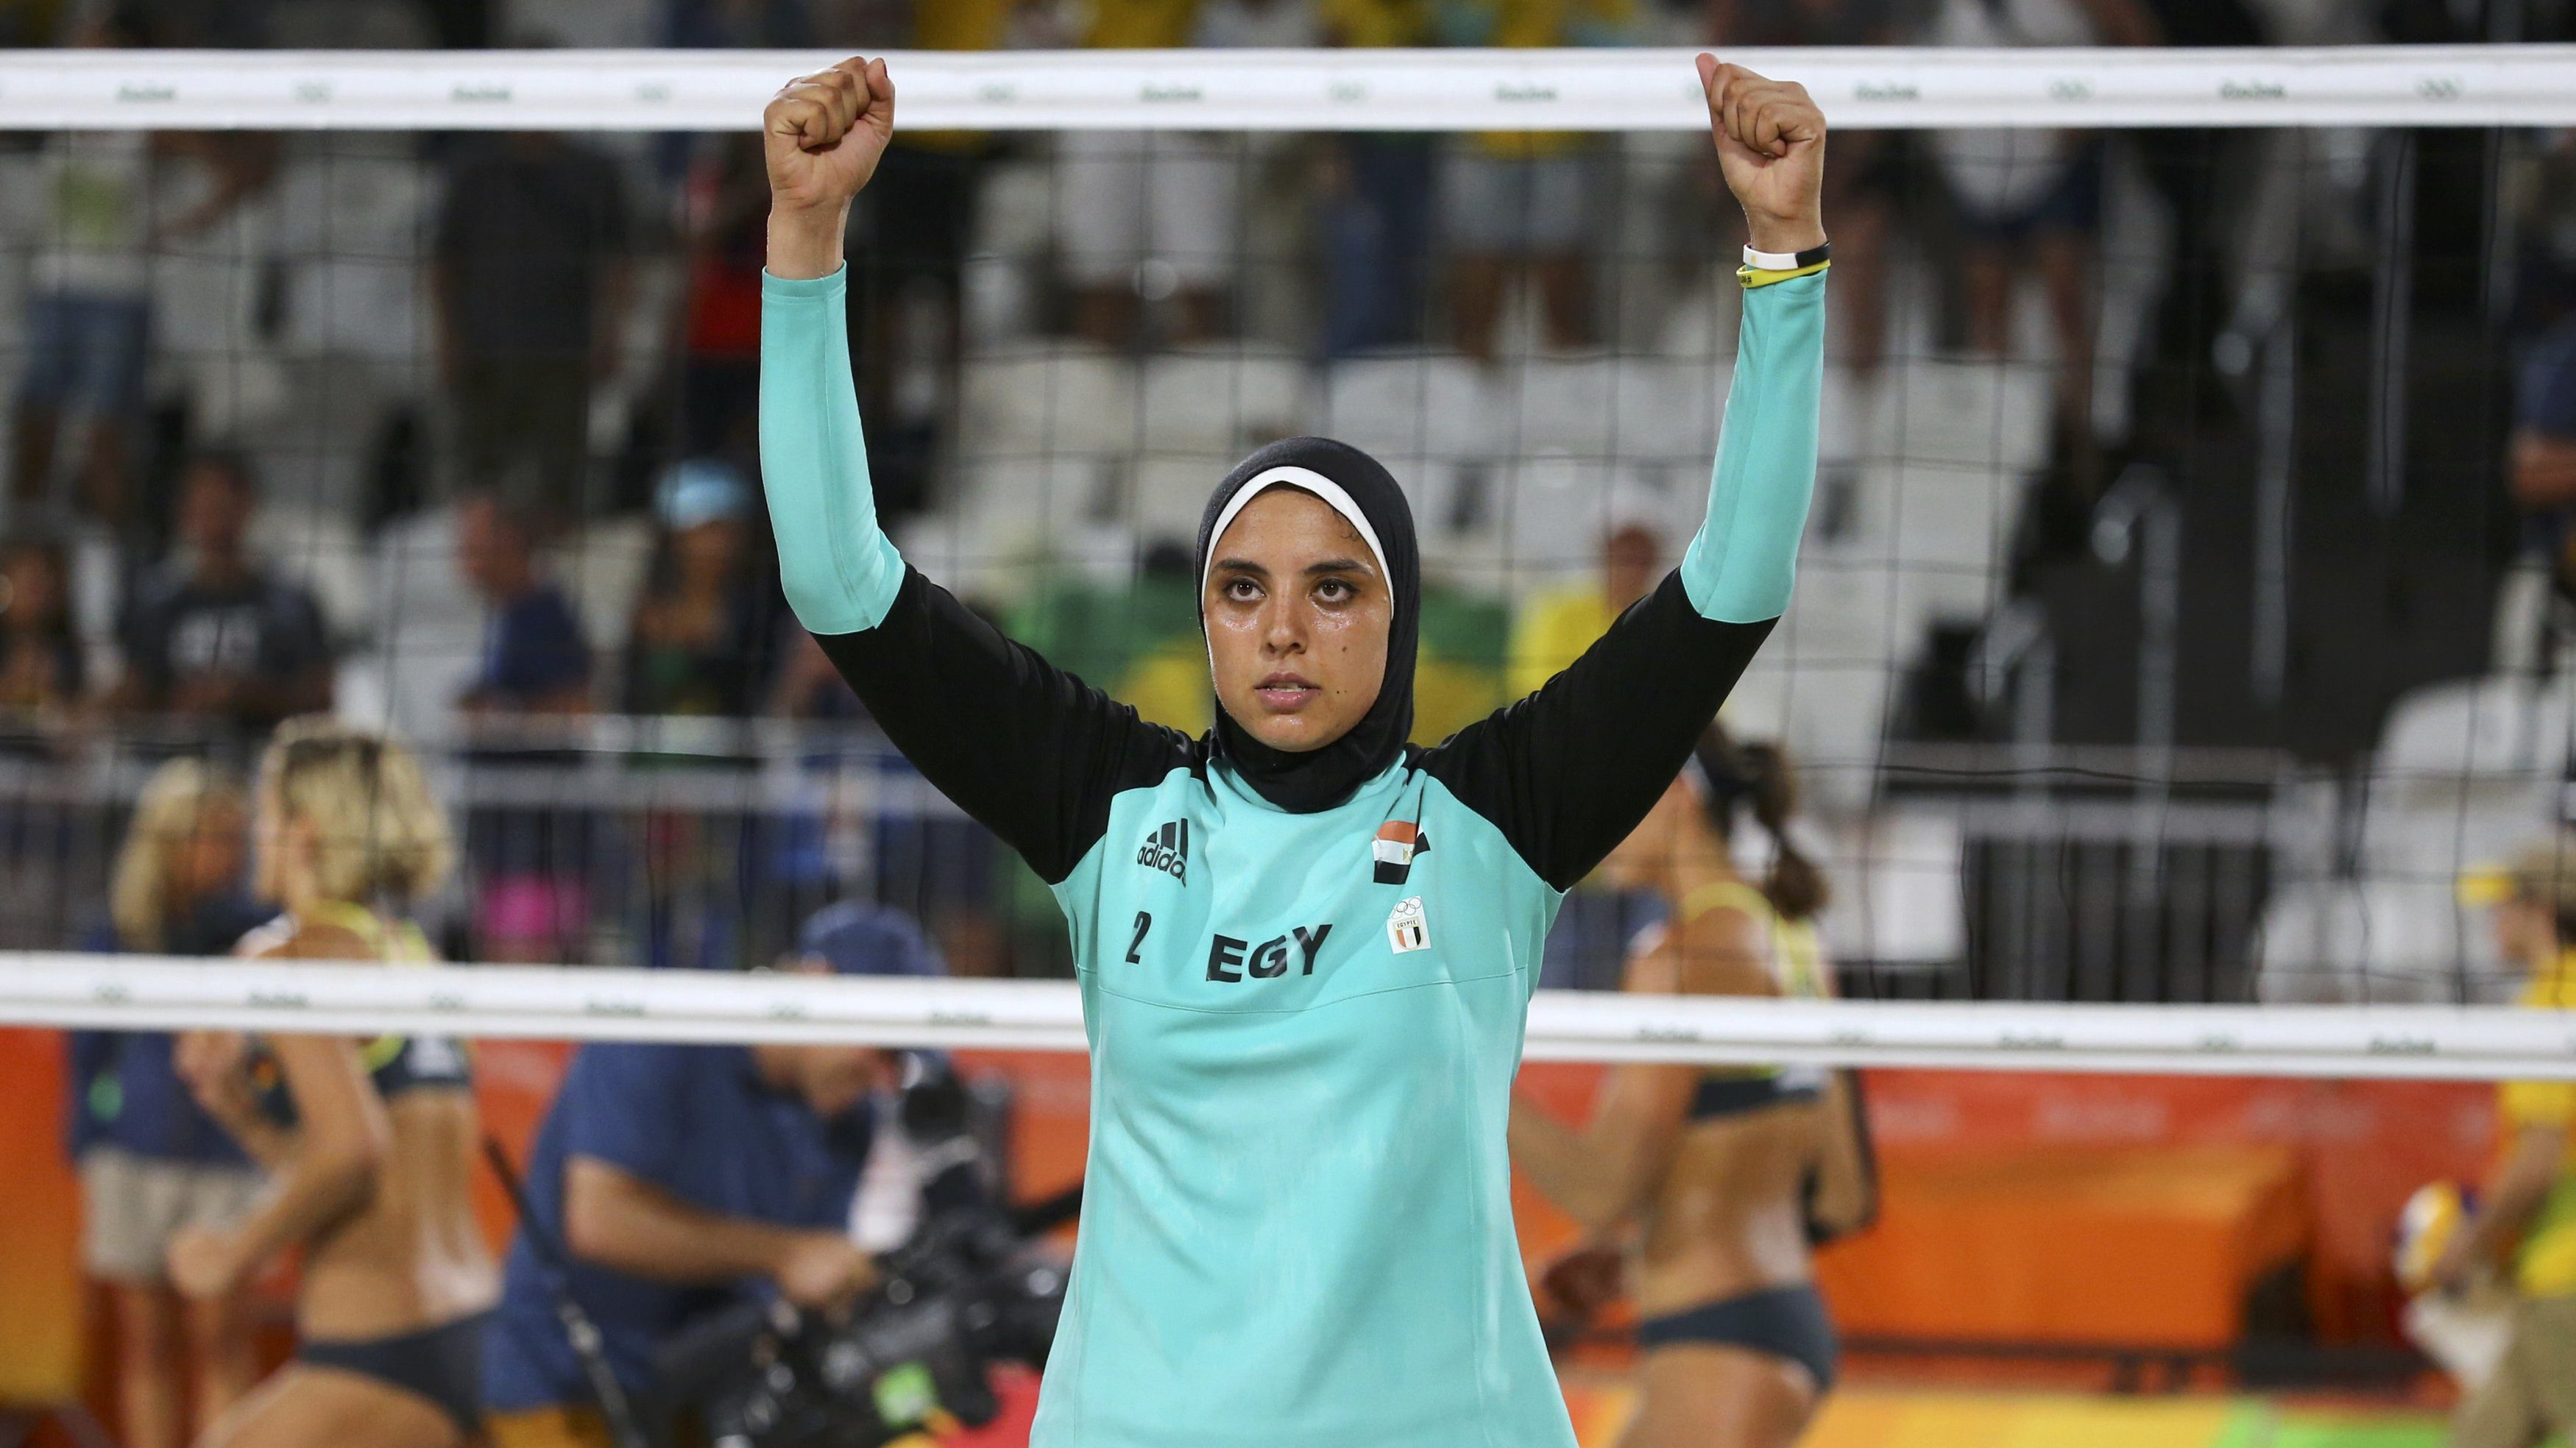 2016 Rio Olympics - Beach Volleyball - Women's Preliminary - Beach Volleyball Arena - Rio de Janeiro, Brazil - 07/08/2016. Doaa Elghobashy (EGY) of Egypt reacts. REUTERS/Ruben Sprich   FOR EDITORIAL USE ONLY. NOT FOR SALE FOR MARKETING OR ADVERTISING CAMPAIGNS.   - RTSLO8Z